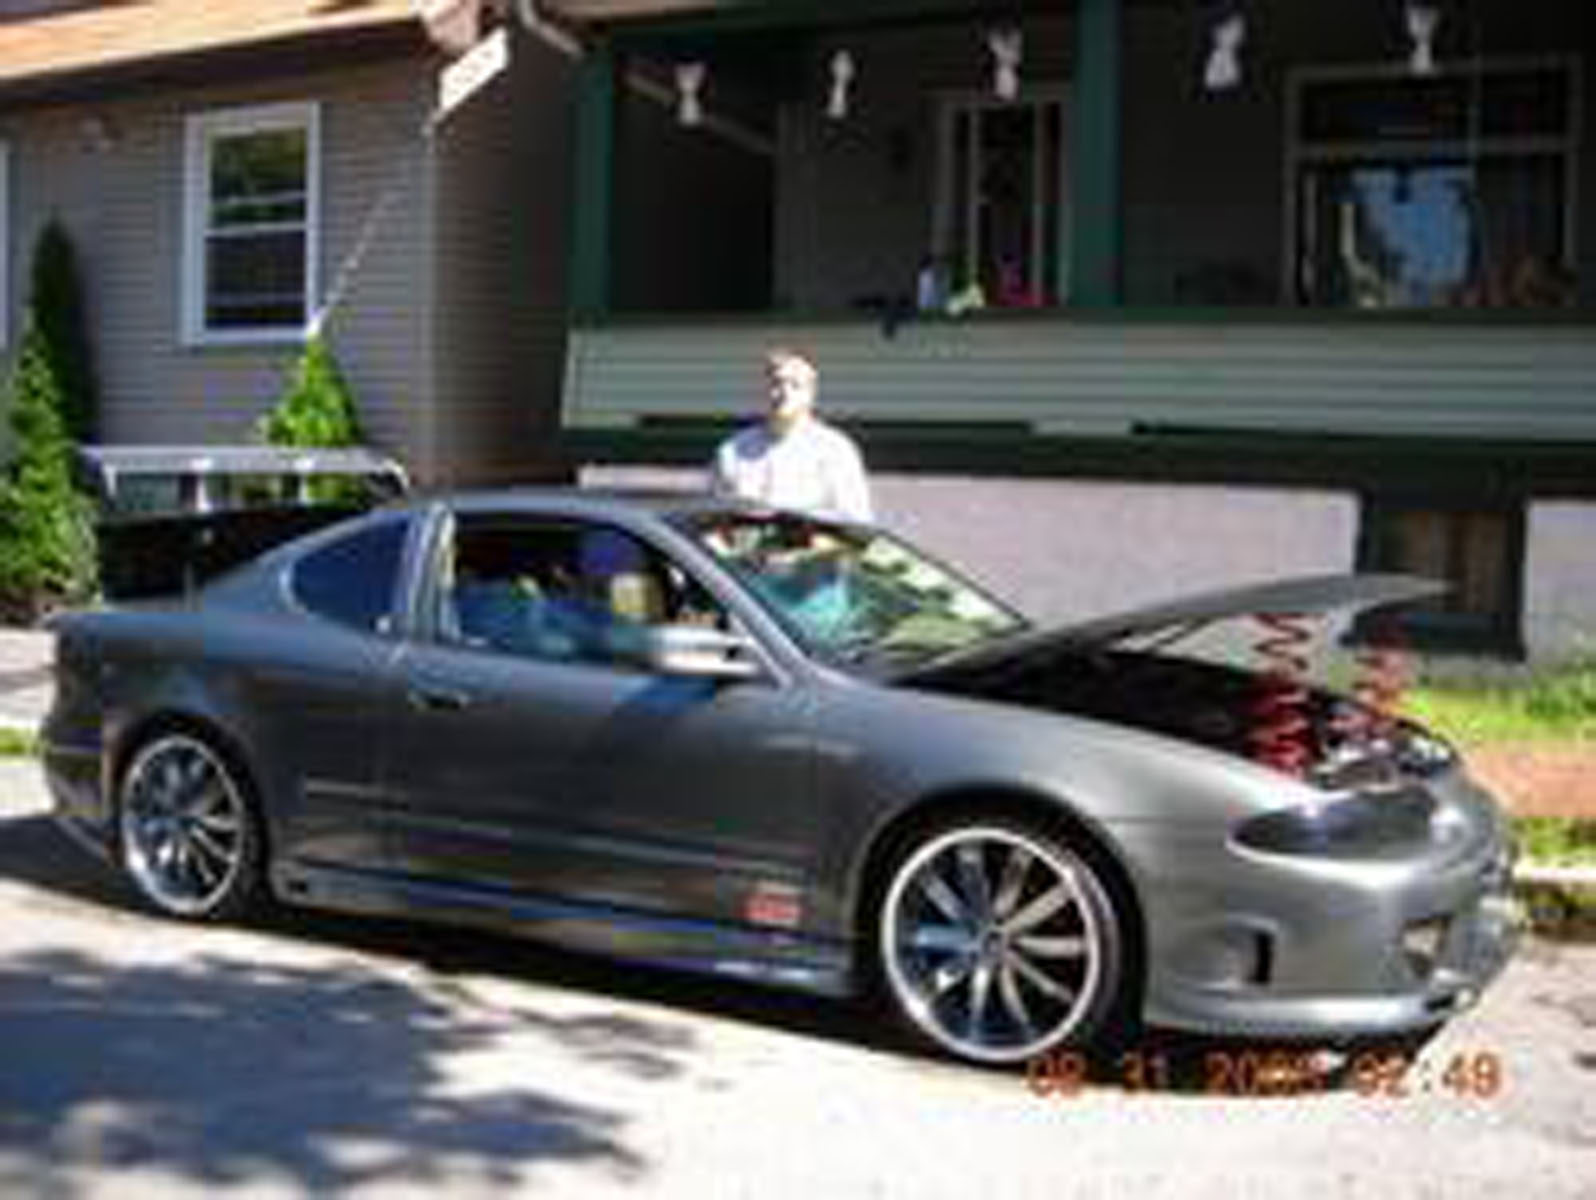 2000 oldsmobile alero gls for sale altoona pennsylvania. Black Bedroom Furniture Sets. Home Design Ideas